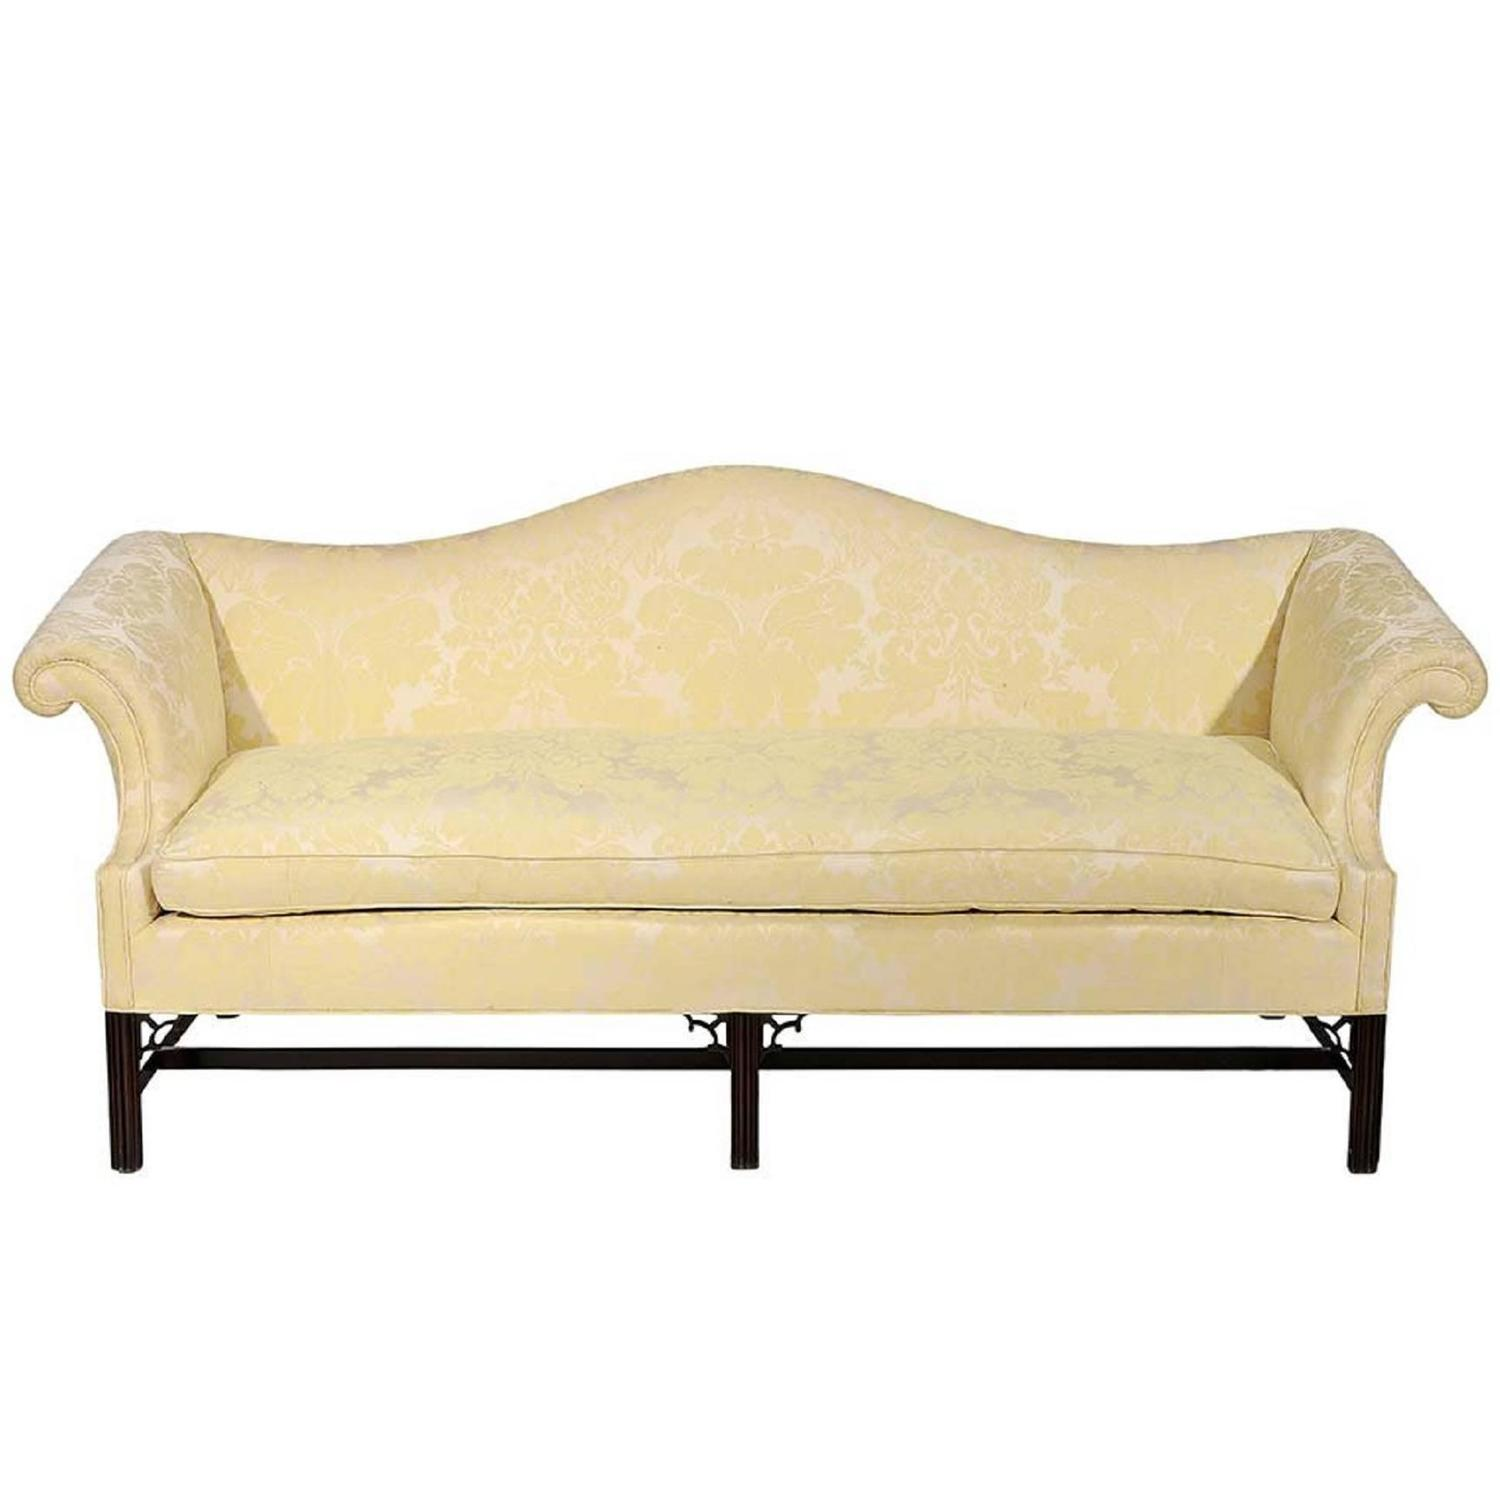 Chippendale Style And Upholstered Camelback Sofa Late 19th Century For Sale At 1stdibs